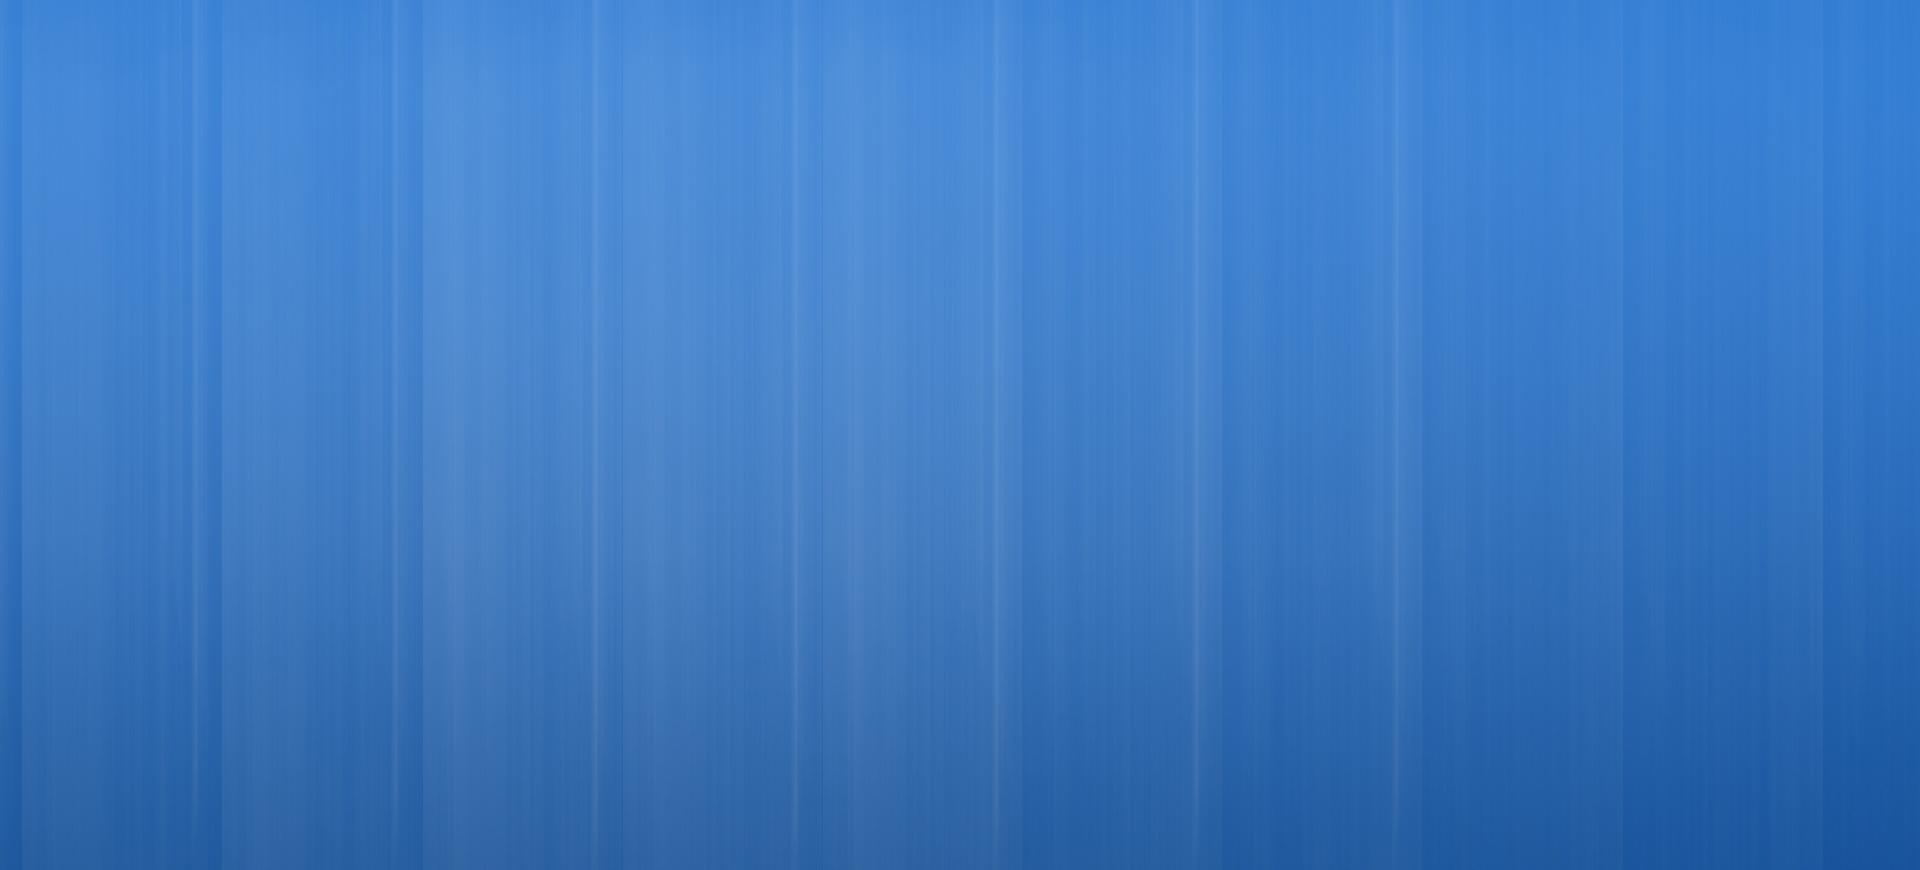 blue_line_background